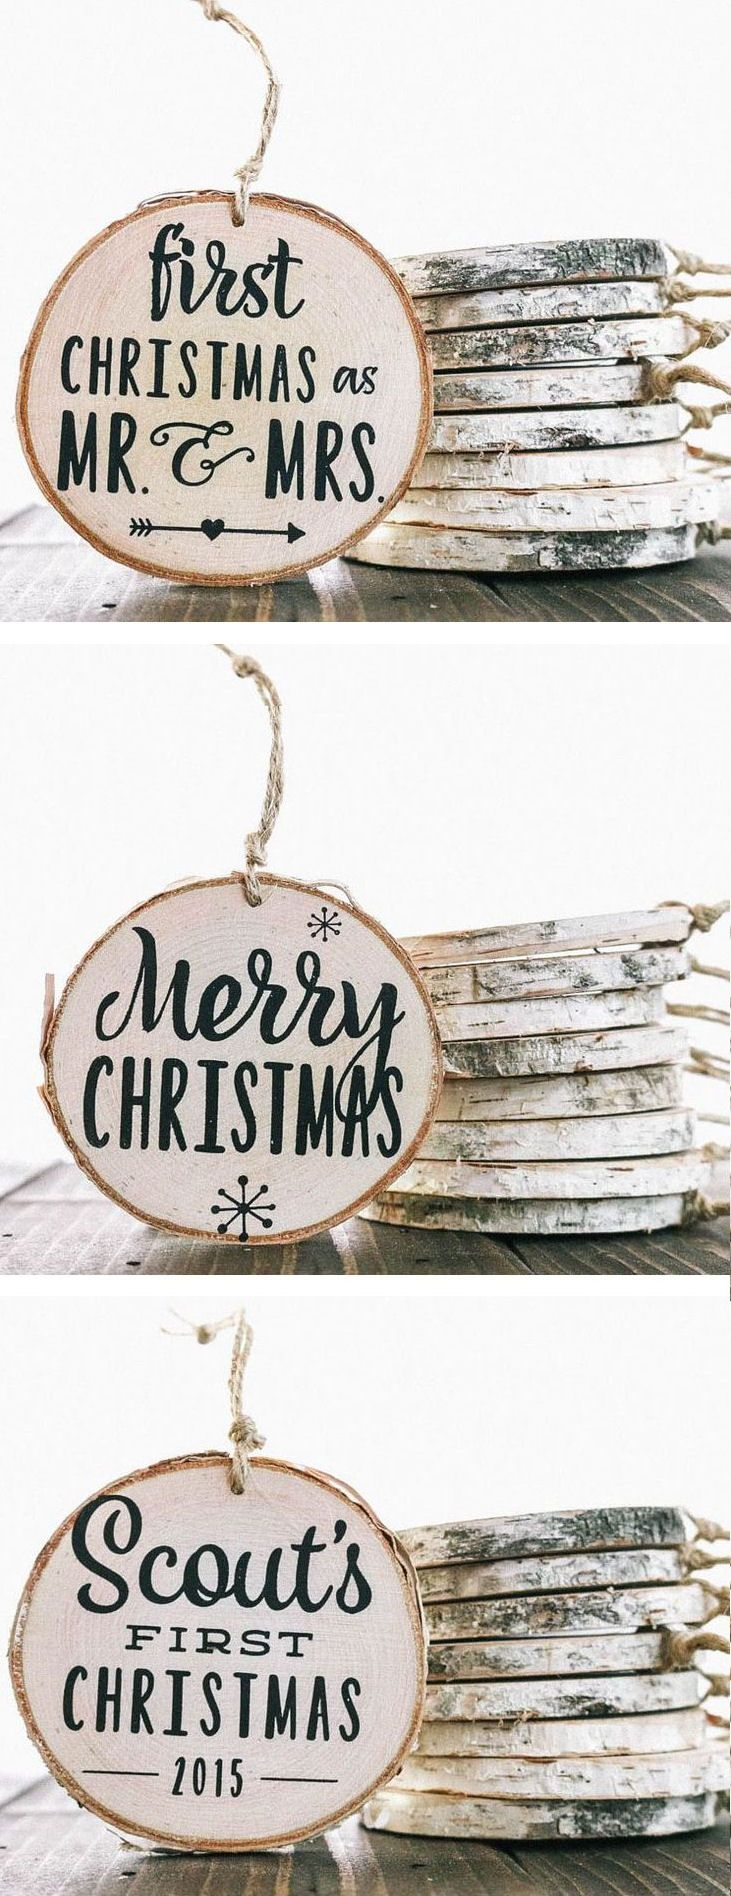 Rustic Birch Wood Ornaments ❤︎ #homemade #christmas #gift